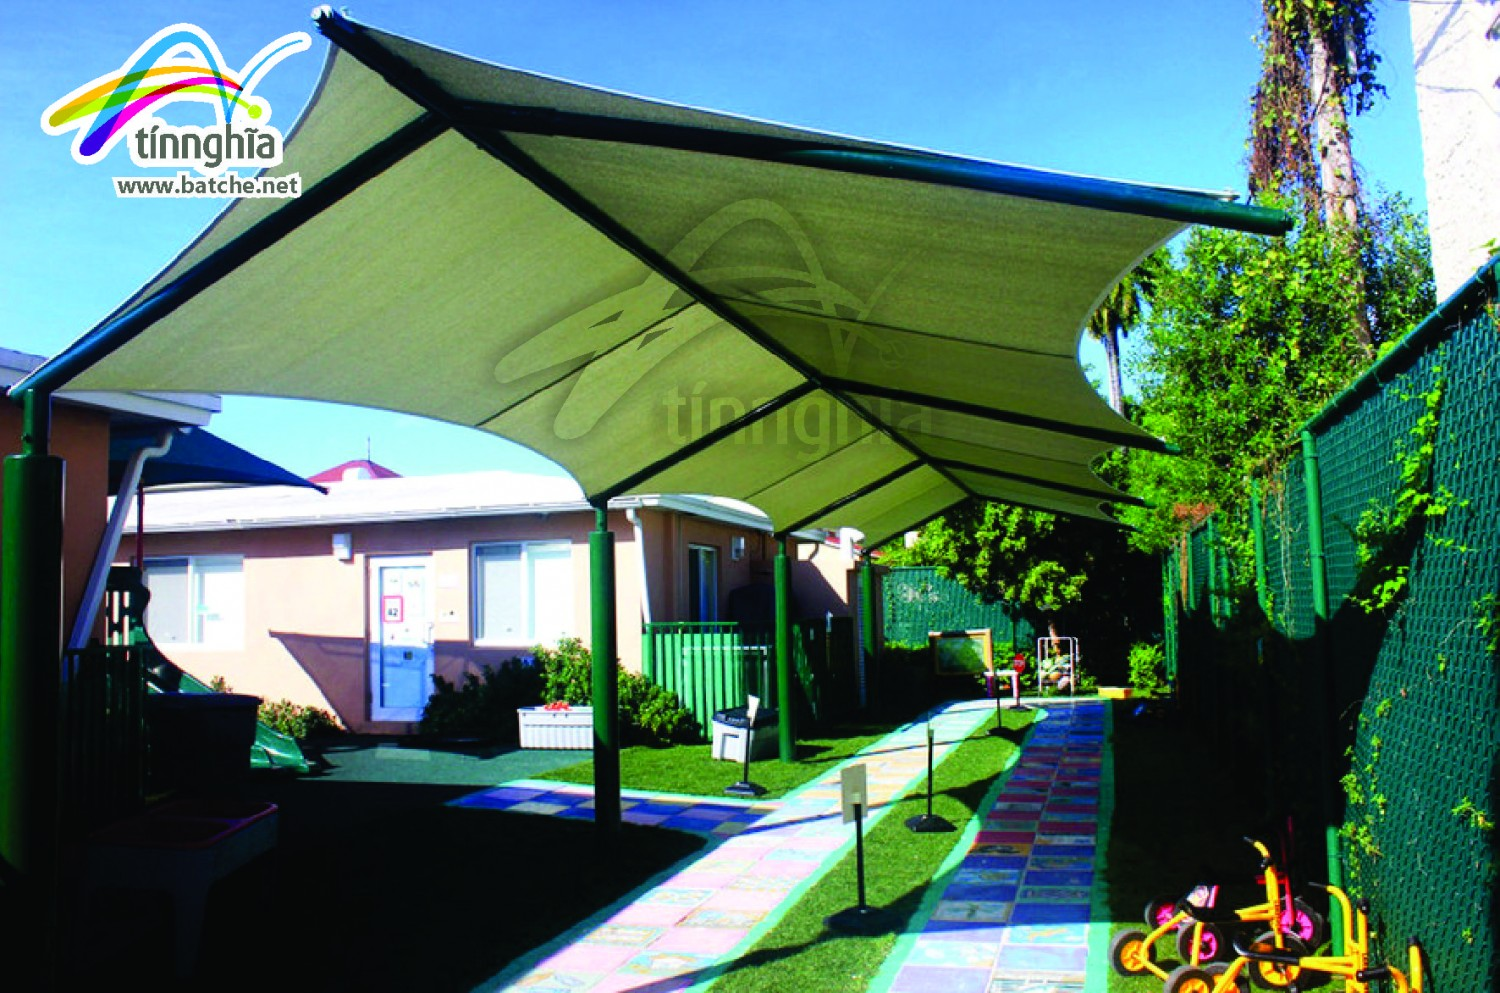 Triagle Shade Sails for School